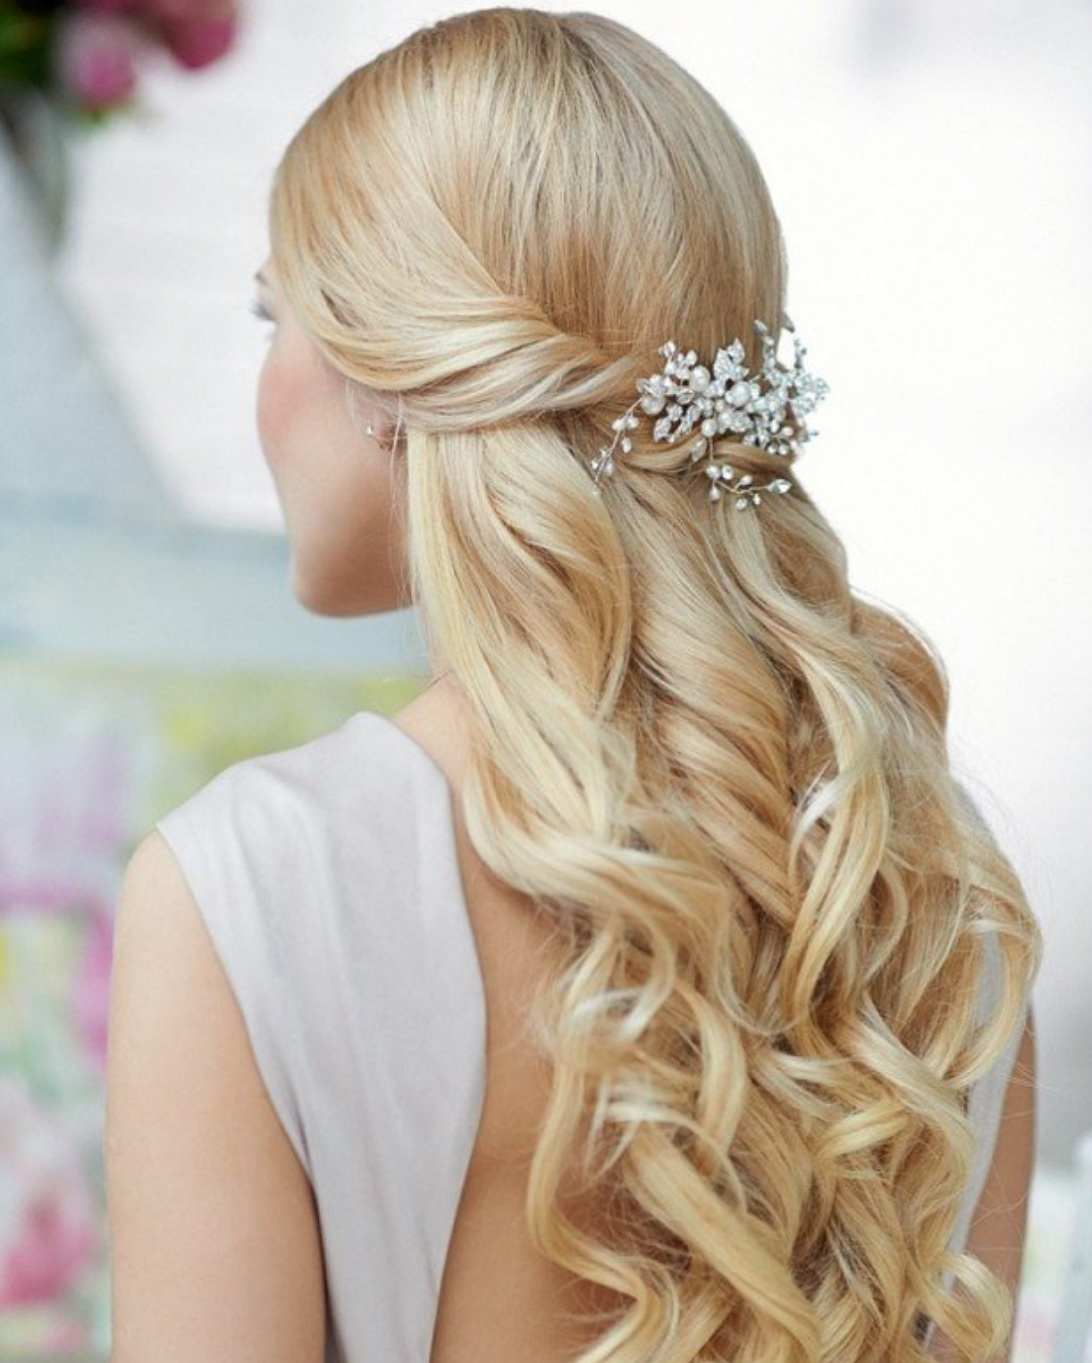 Hair Style Tip by wearticles.com